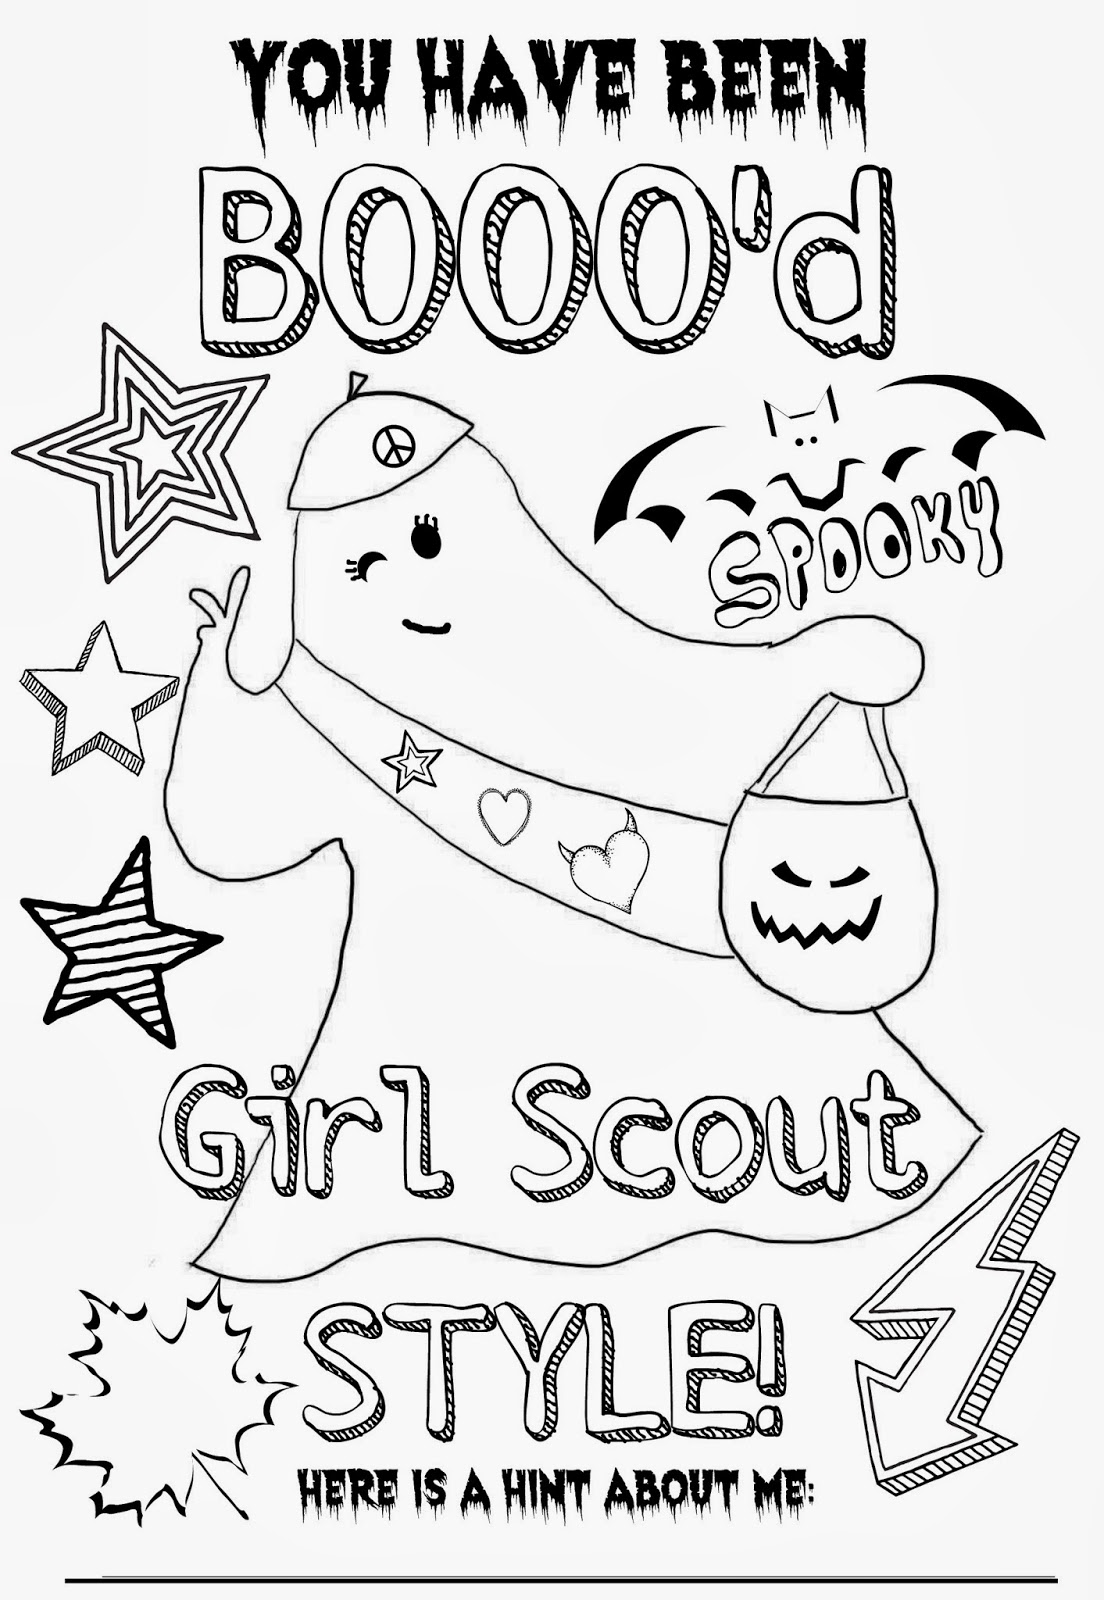 Best girls scout brownie quotes quotesgram for Girl scout coloring page